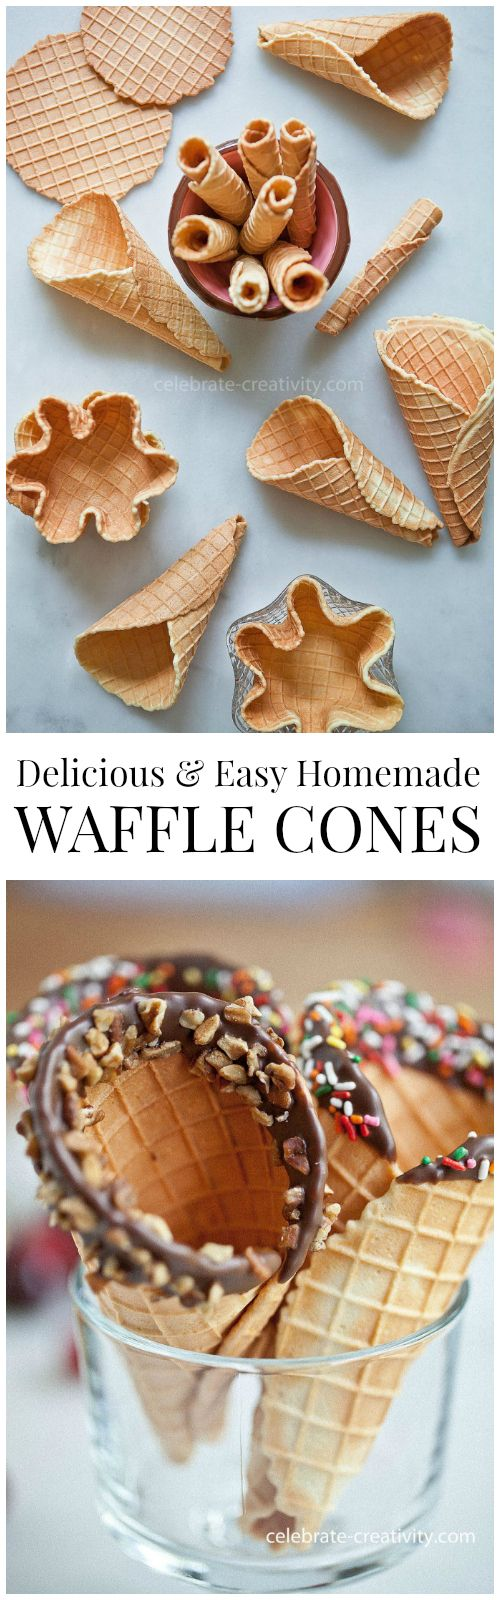 Delicious Homemade Waffle Cones and Bowls are easy to make and so much better than store-bought. So fun!!